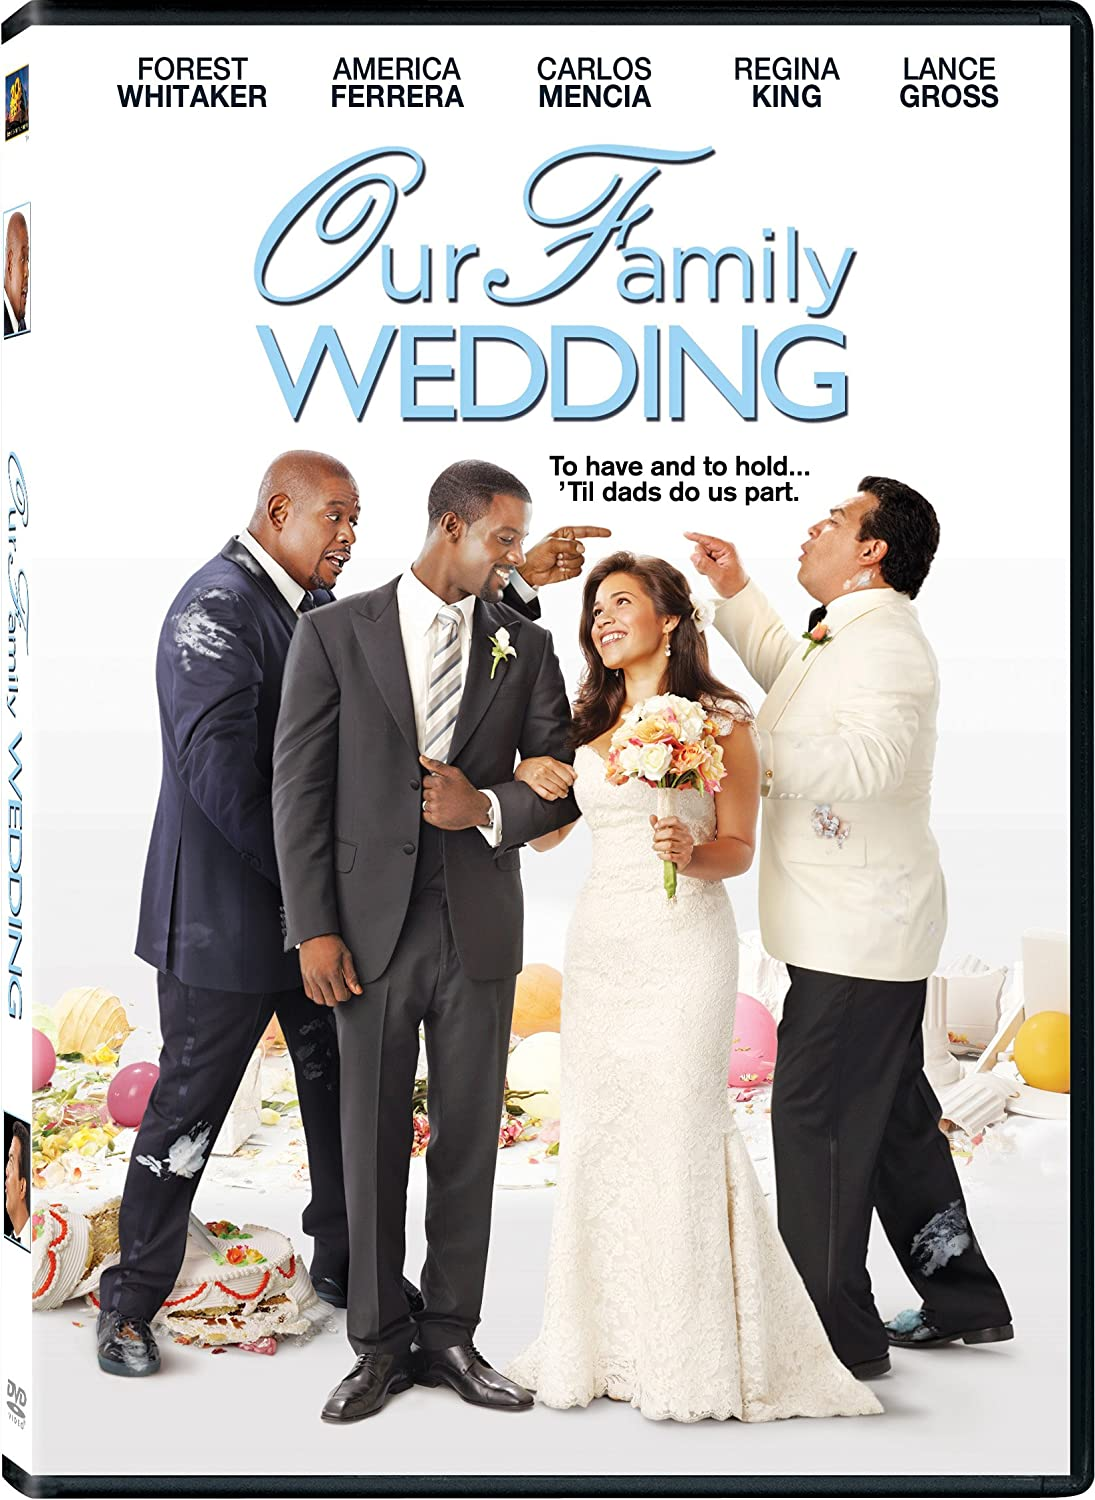 Our Family Wedding: Amazon.ca: Forest Whitaker: DVD